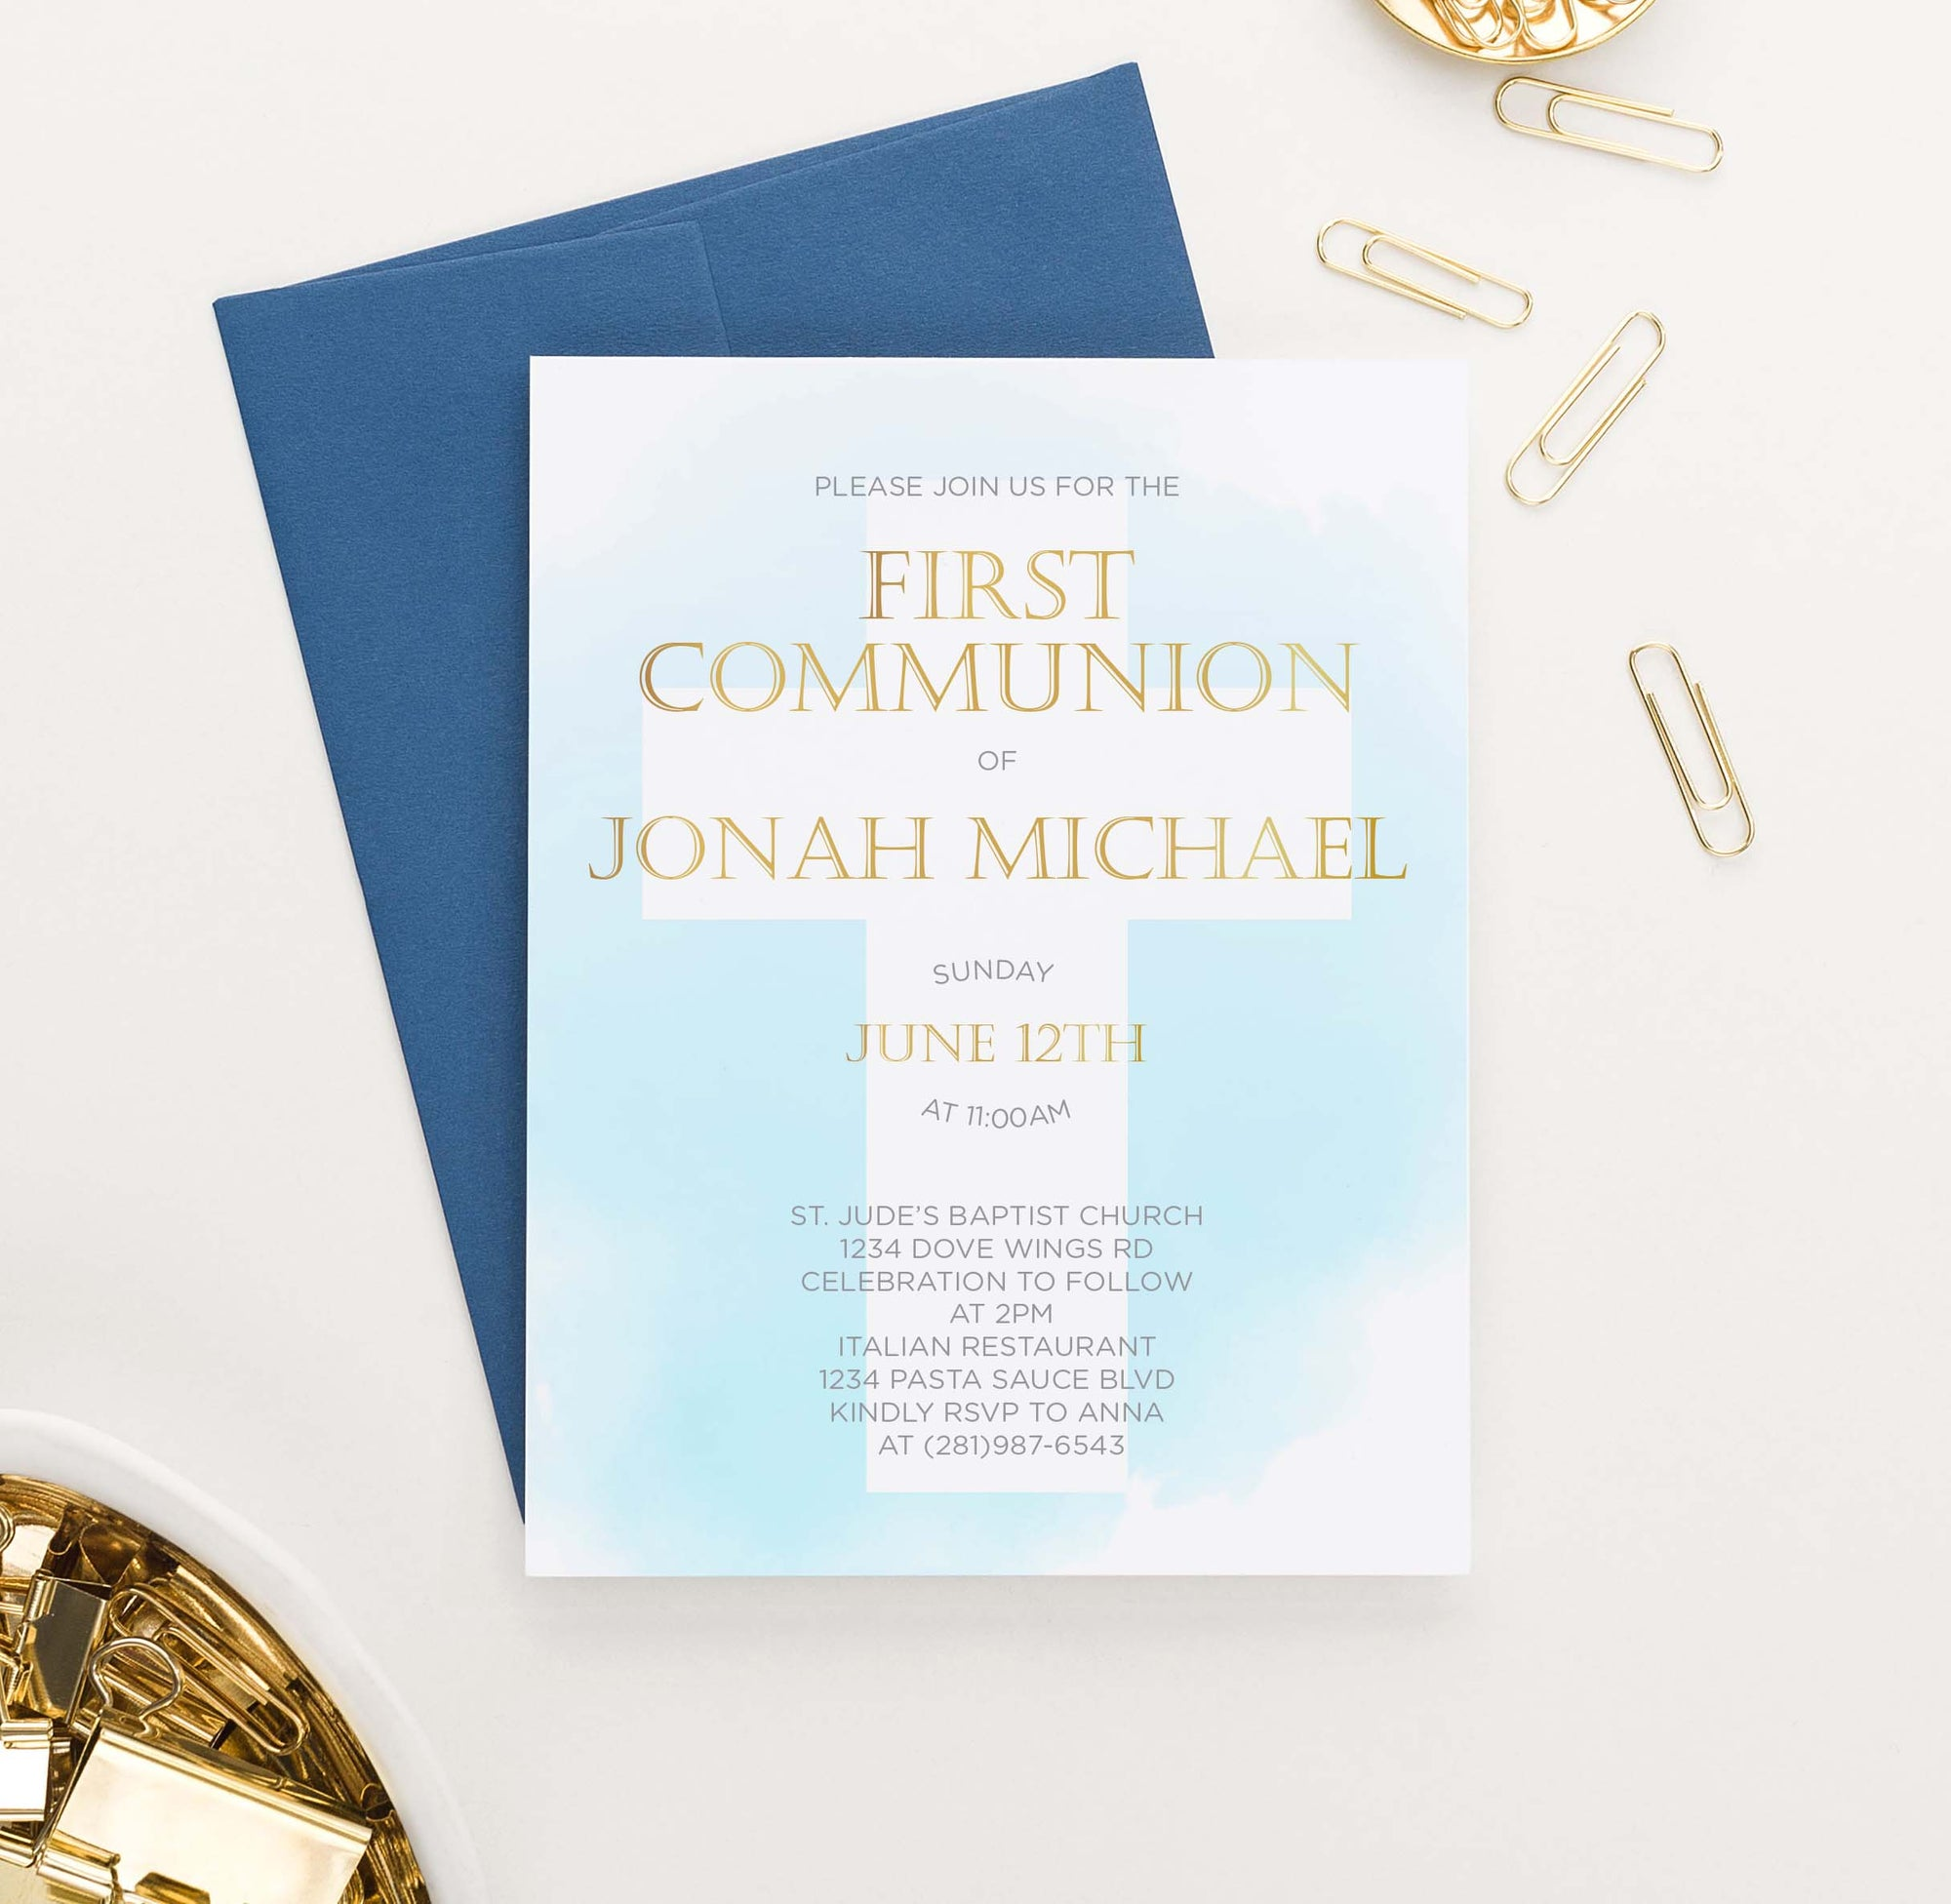 FCI007 blue watercolor first communion invitations for boy gold cross 1